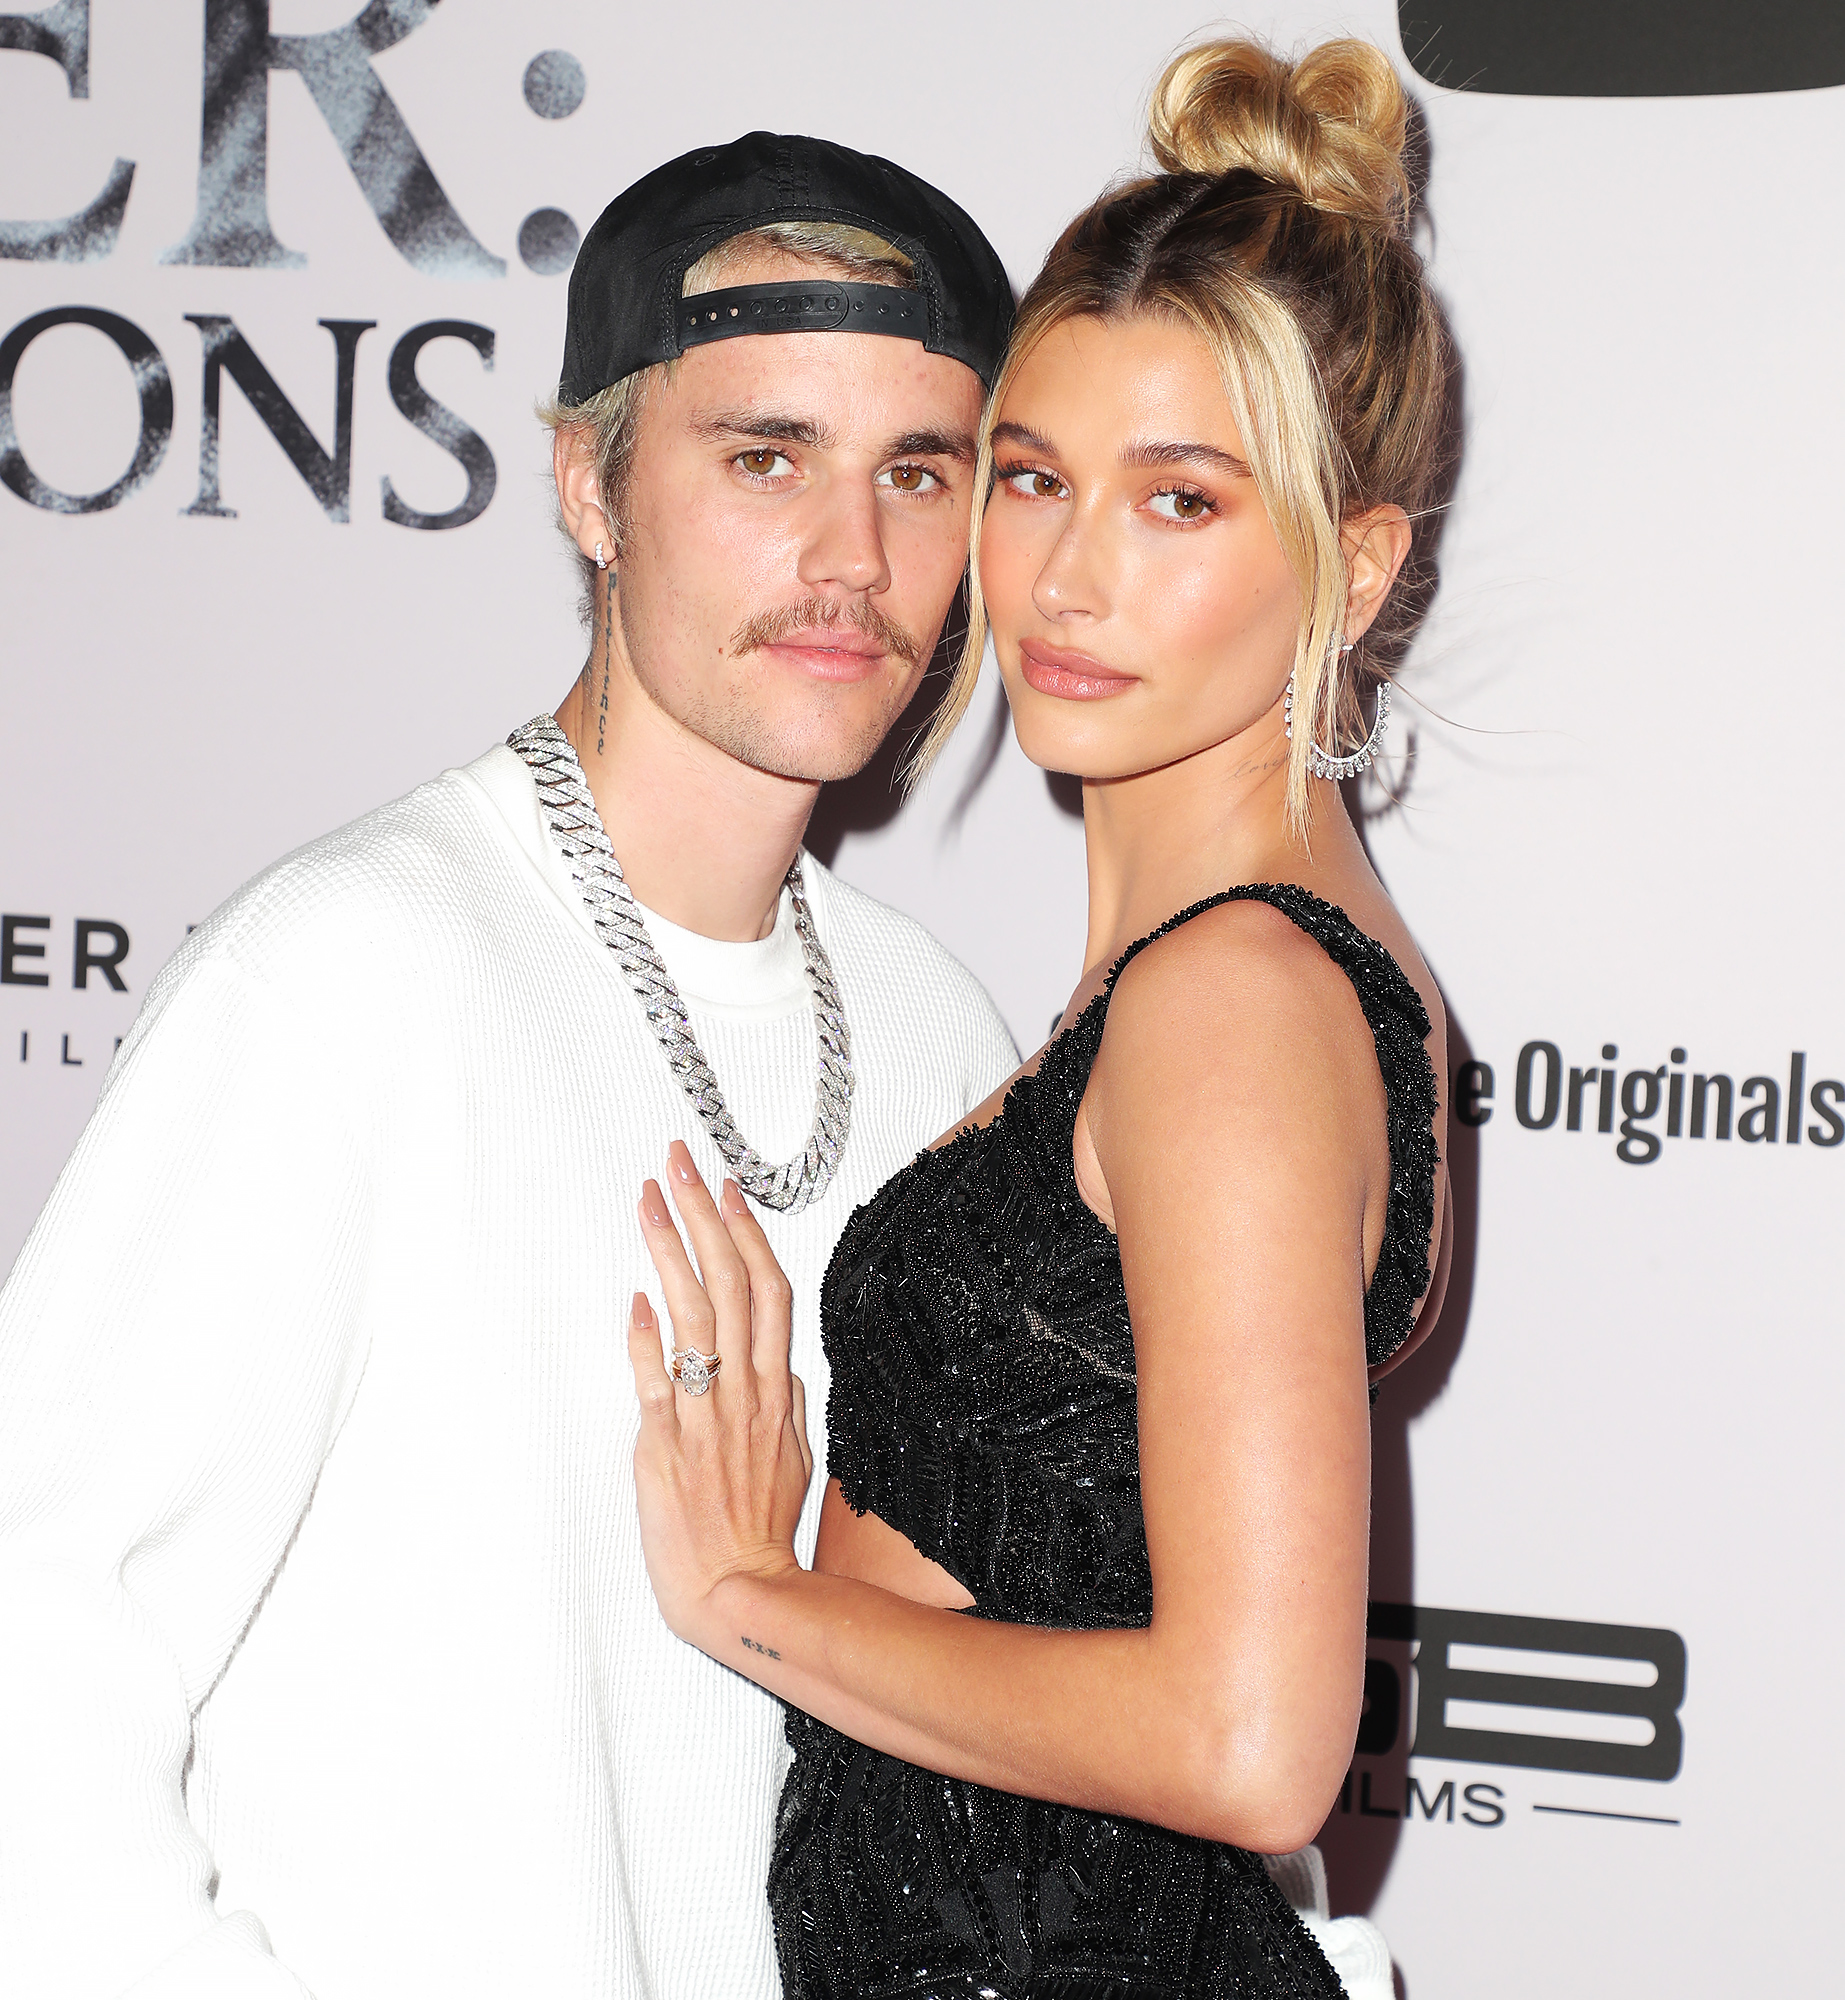 Hailey Baldwin Kisses Justin Bieber in PDA-Heavy Selfie Amid Quarantine